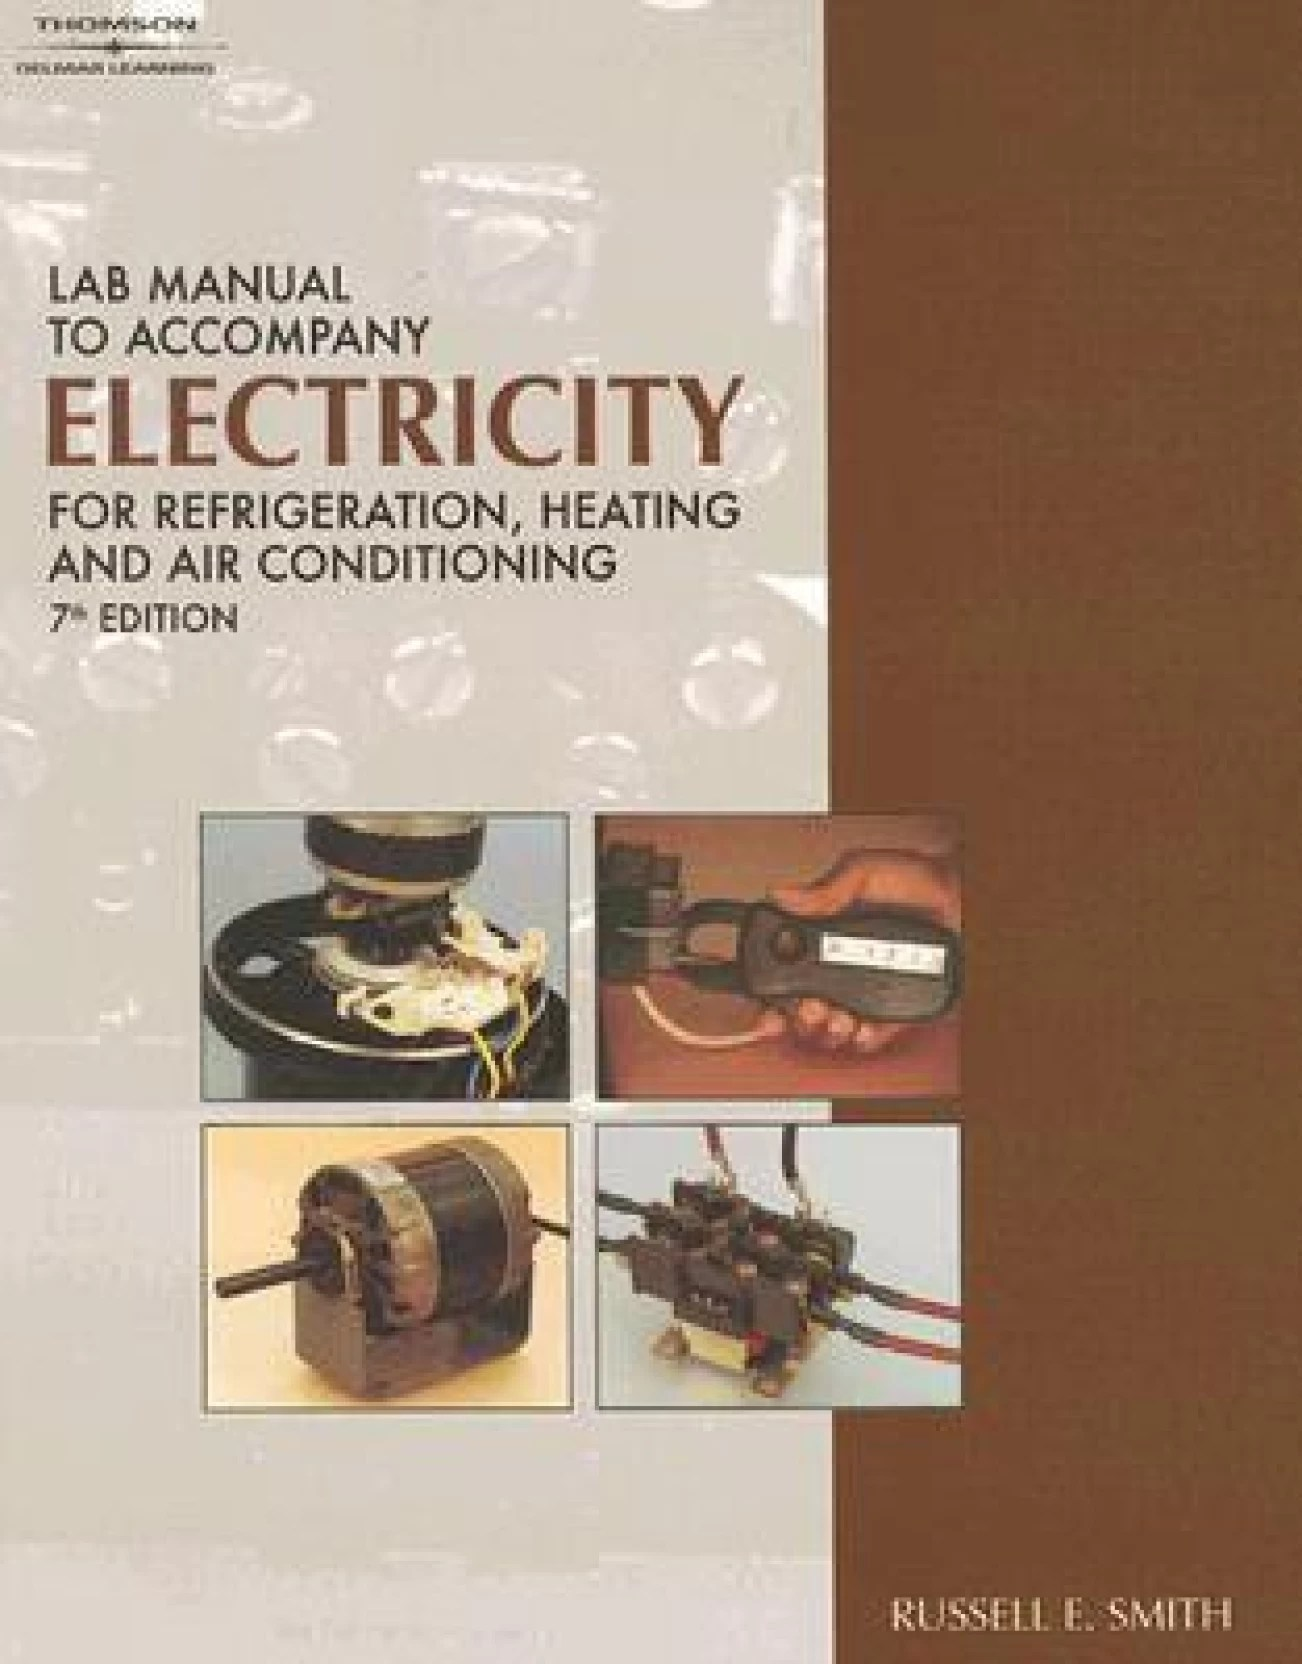 lab manual to accompany electricity for refrigeration heating and air conditioning english paperback russell e smith  [ 1302 x 1664 Pixel ]